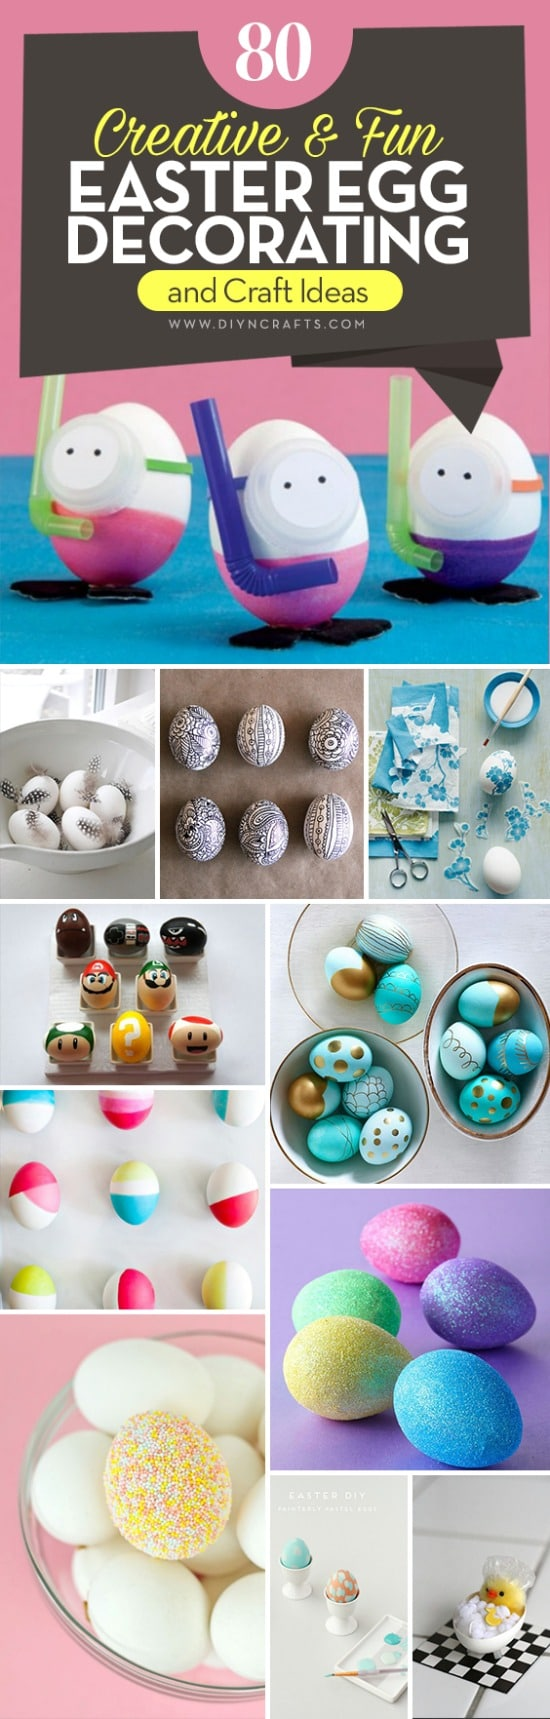 80 Creative And Fun Easter Egg Decorating And Craft Ideas Diy Crafts